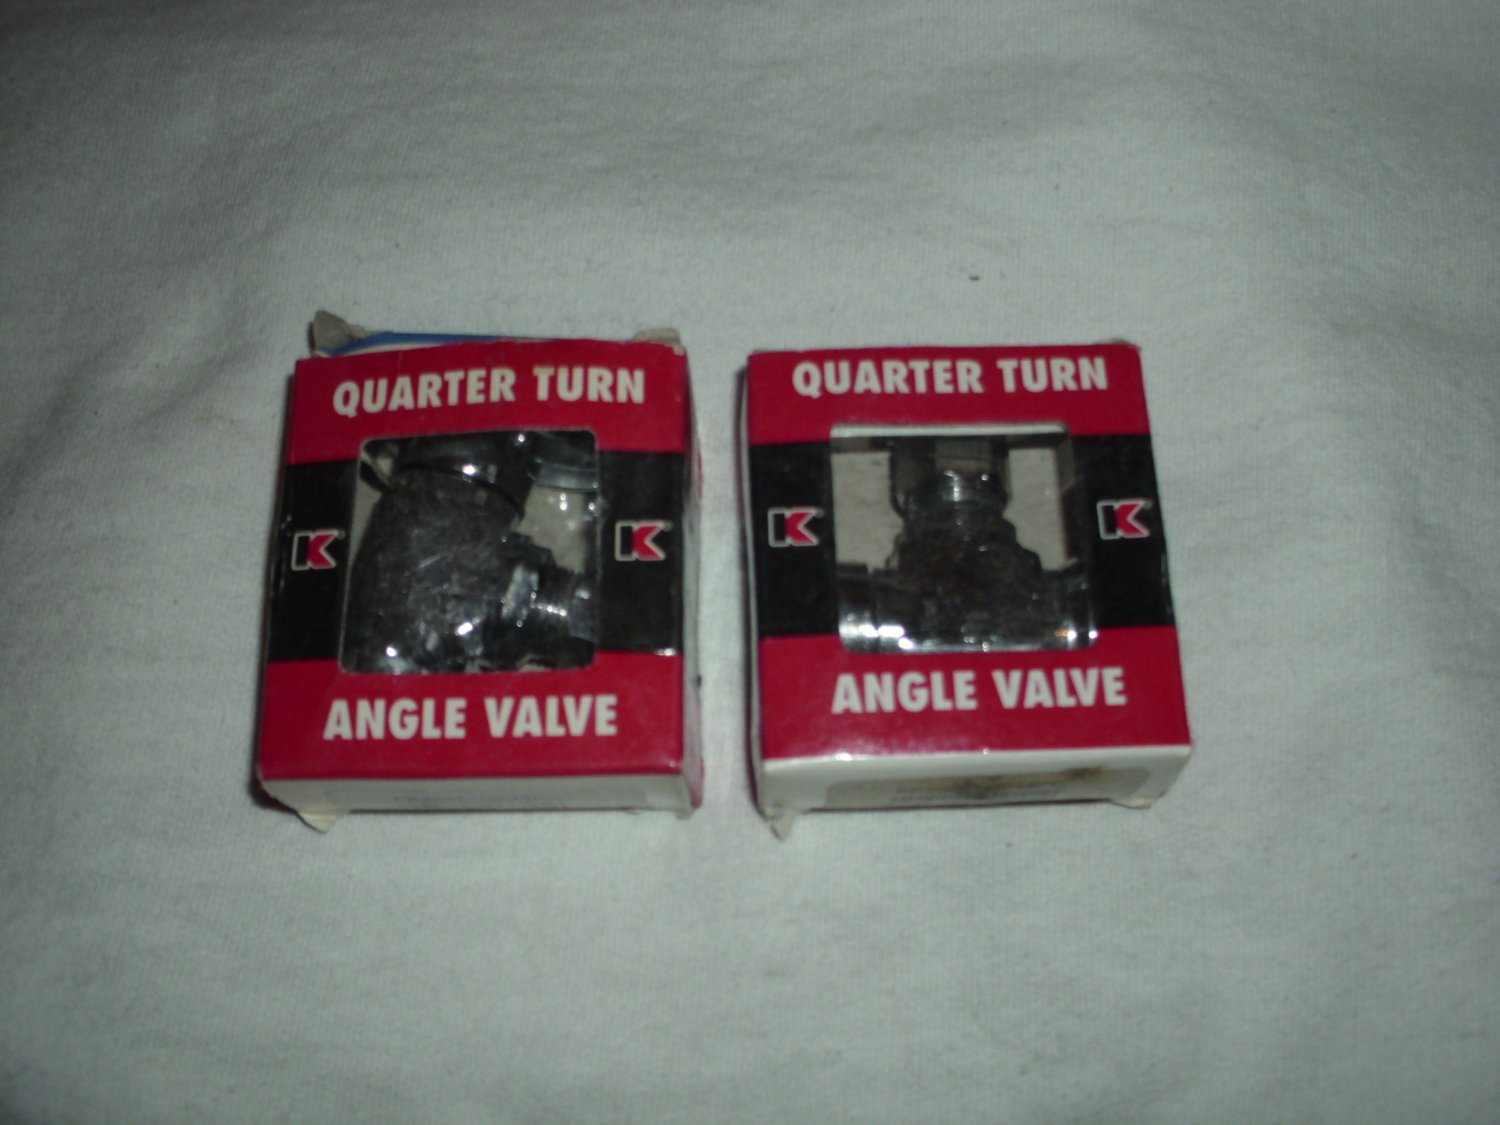 2 Keeney Manufacturing Co. Quarter Turn Angle Valves